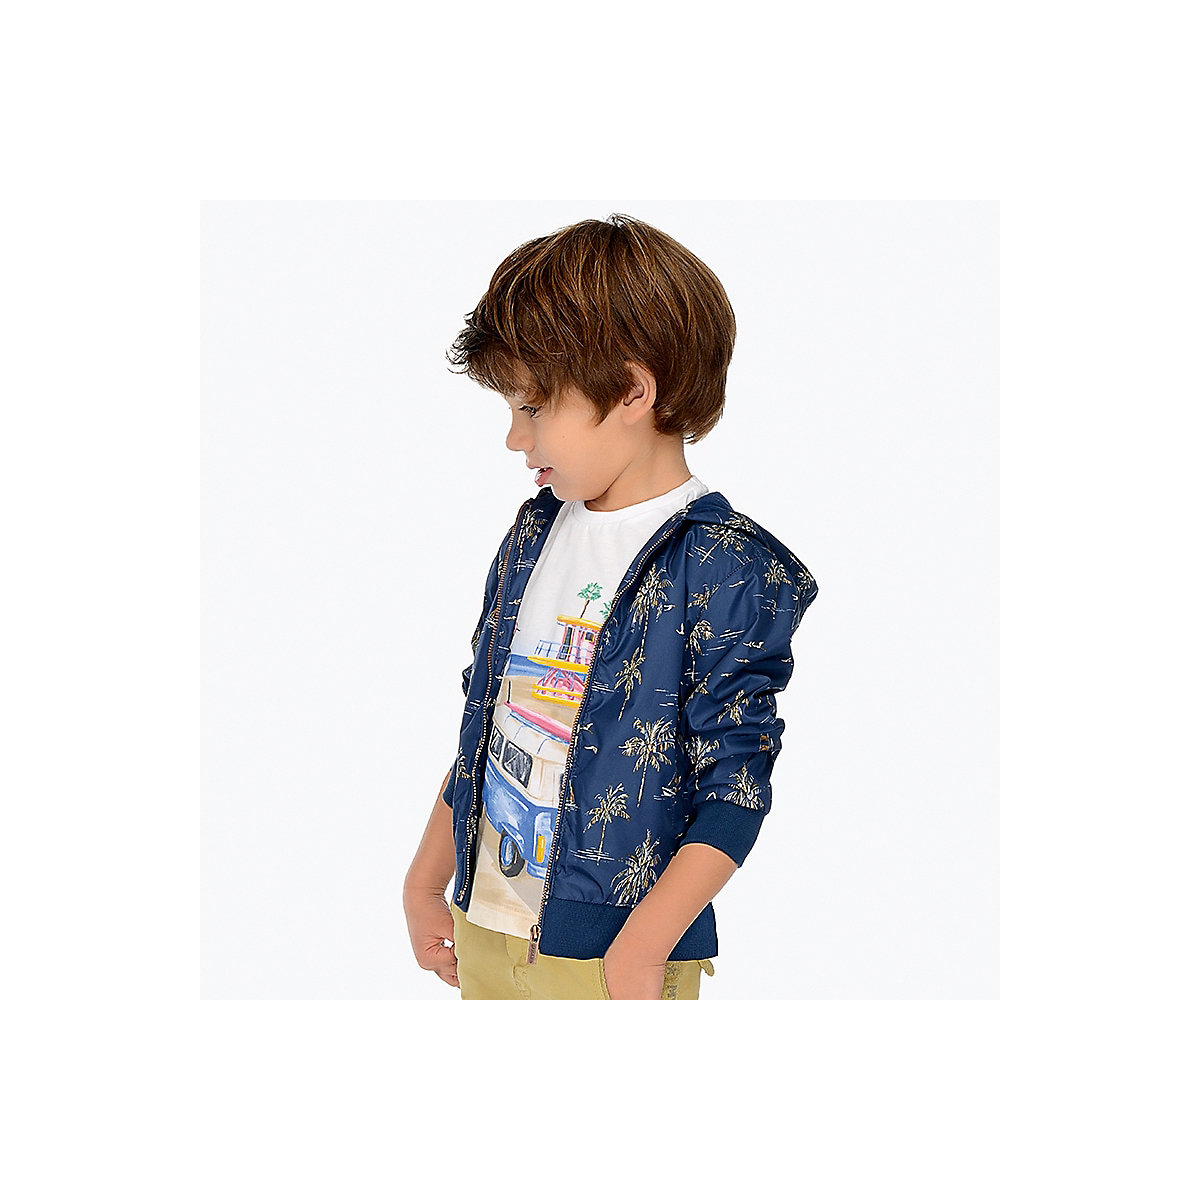 Фото - Mayoral Jackets & Coats 10678719 jacket for boys coat baby clothes children clothing outwear boy reima jackets 8688821 for boys polyester winter fur clothes boy